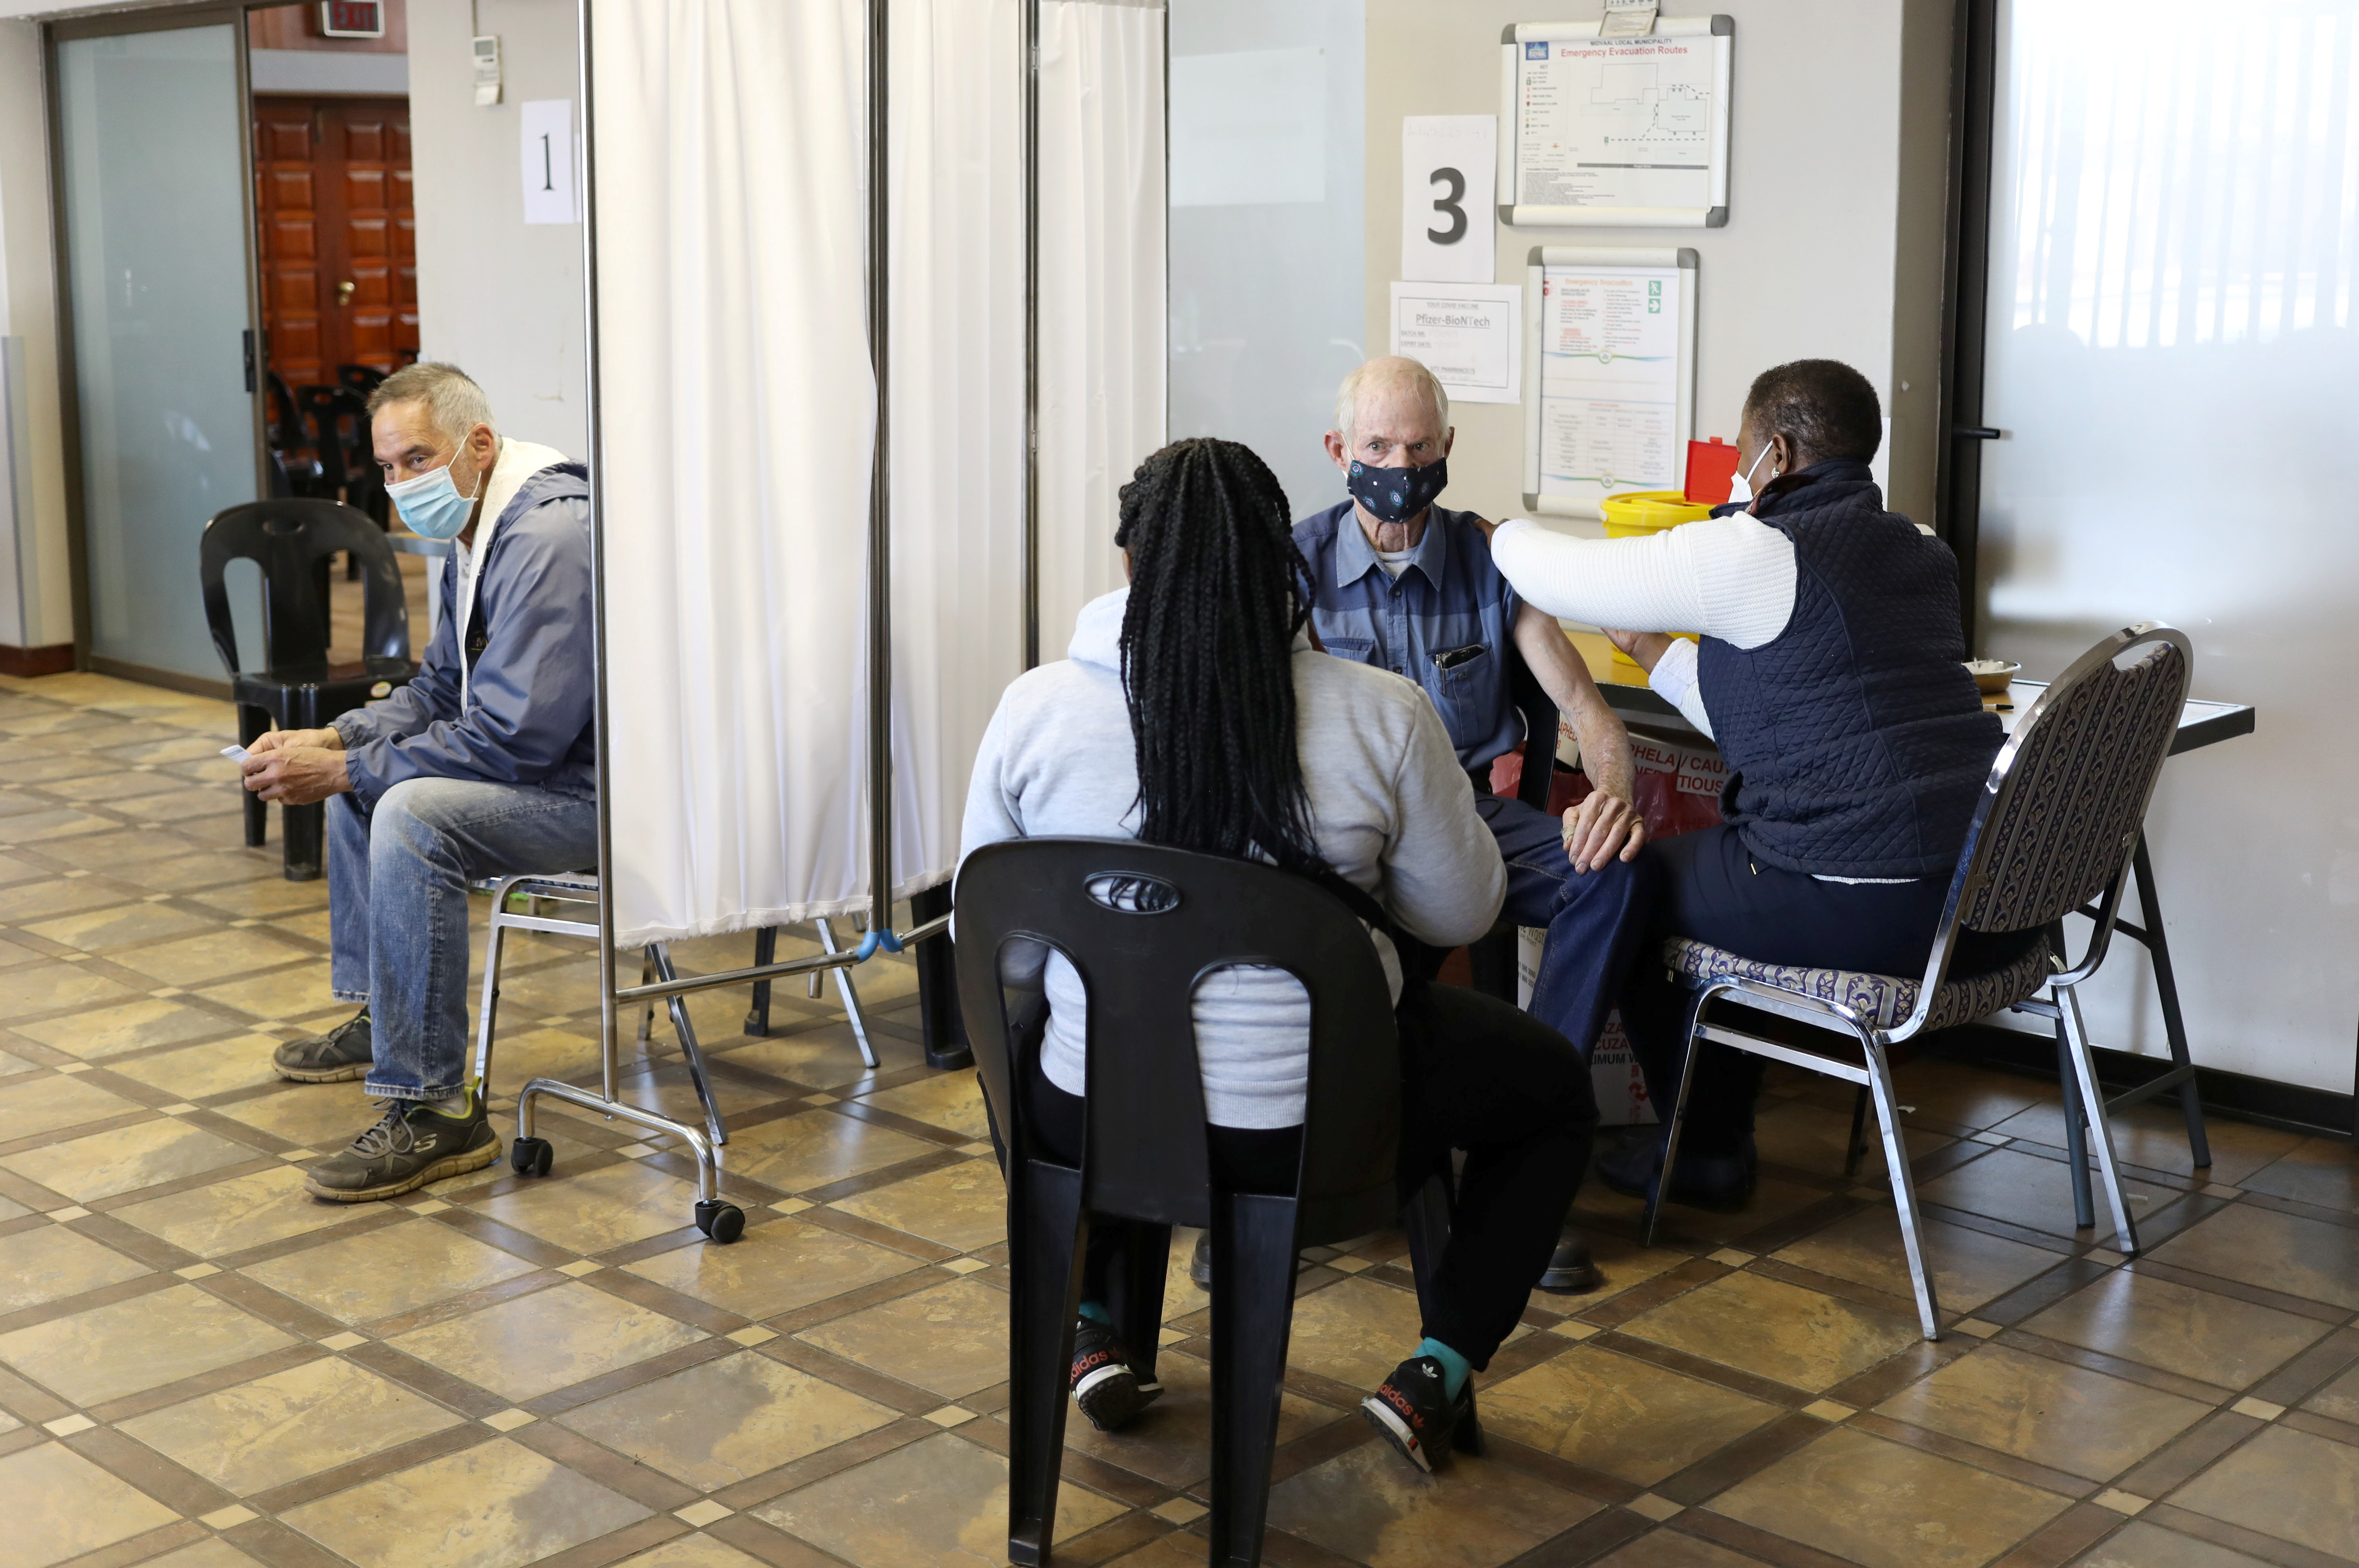 A man is vaccinated as another looks on while waiting to receive a dose of a coronavirus disease (COVID-19) vaccine in Meyerton, south of Johannesburg, South Africa June 23, 2021. REUTERS/Siphiwe Sibeko